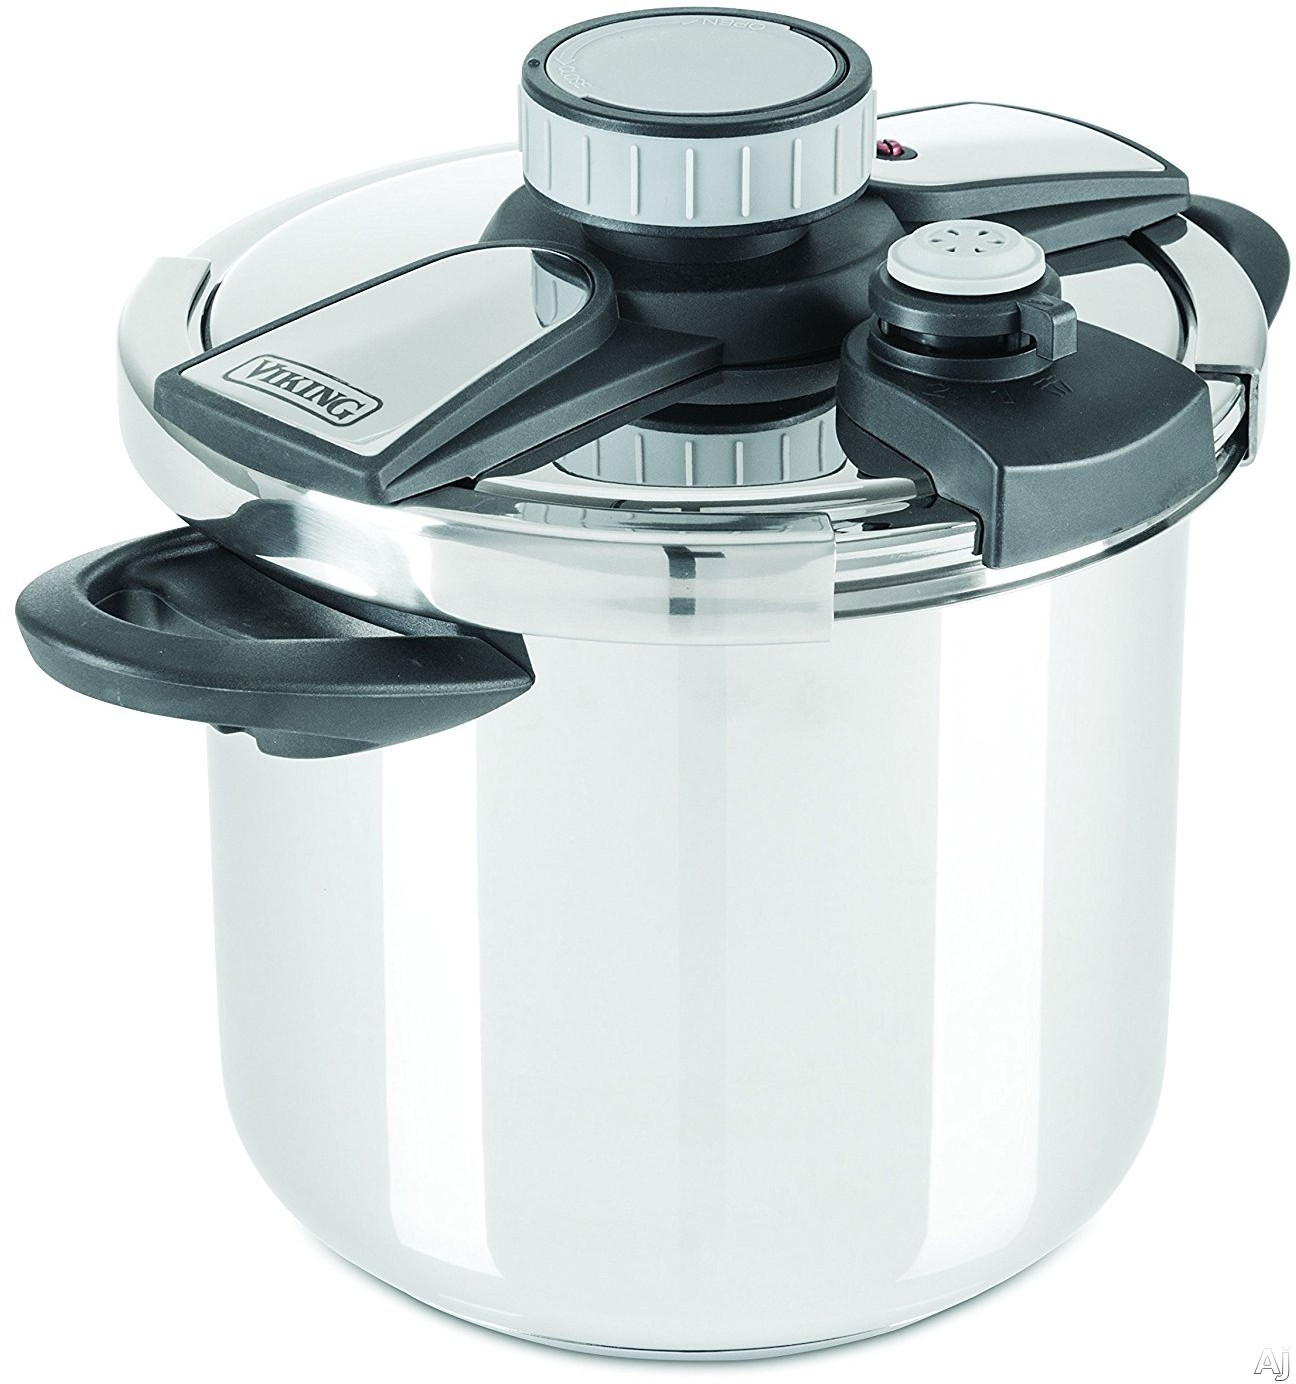 Image of Viking 405028QBLK Stainless Steel Pressure Cooker with Steamer Basket, Induction Suitable, Pressure Release Dial, Stay-Cool Handles, Easy-Lock Lid, Trivet, Measurement Markers and 8-Quart Capacity